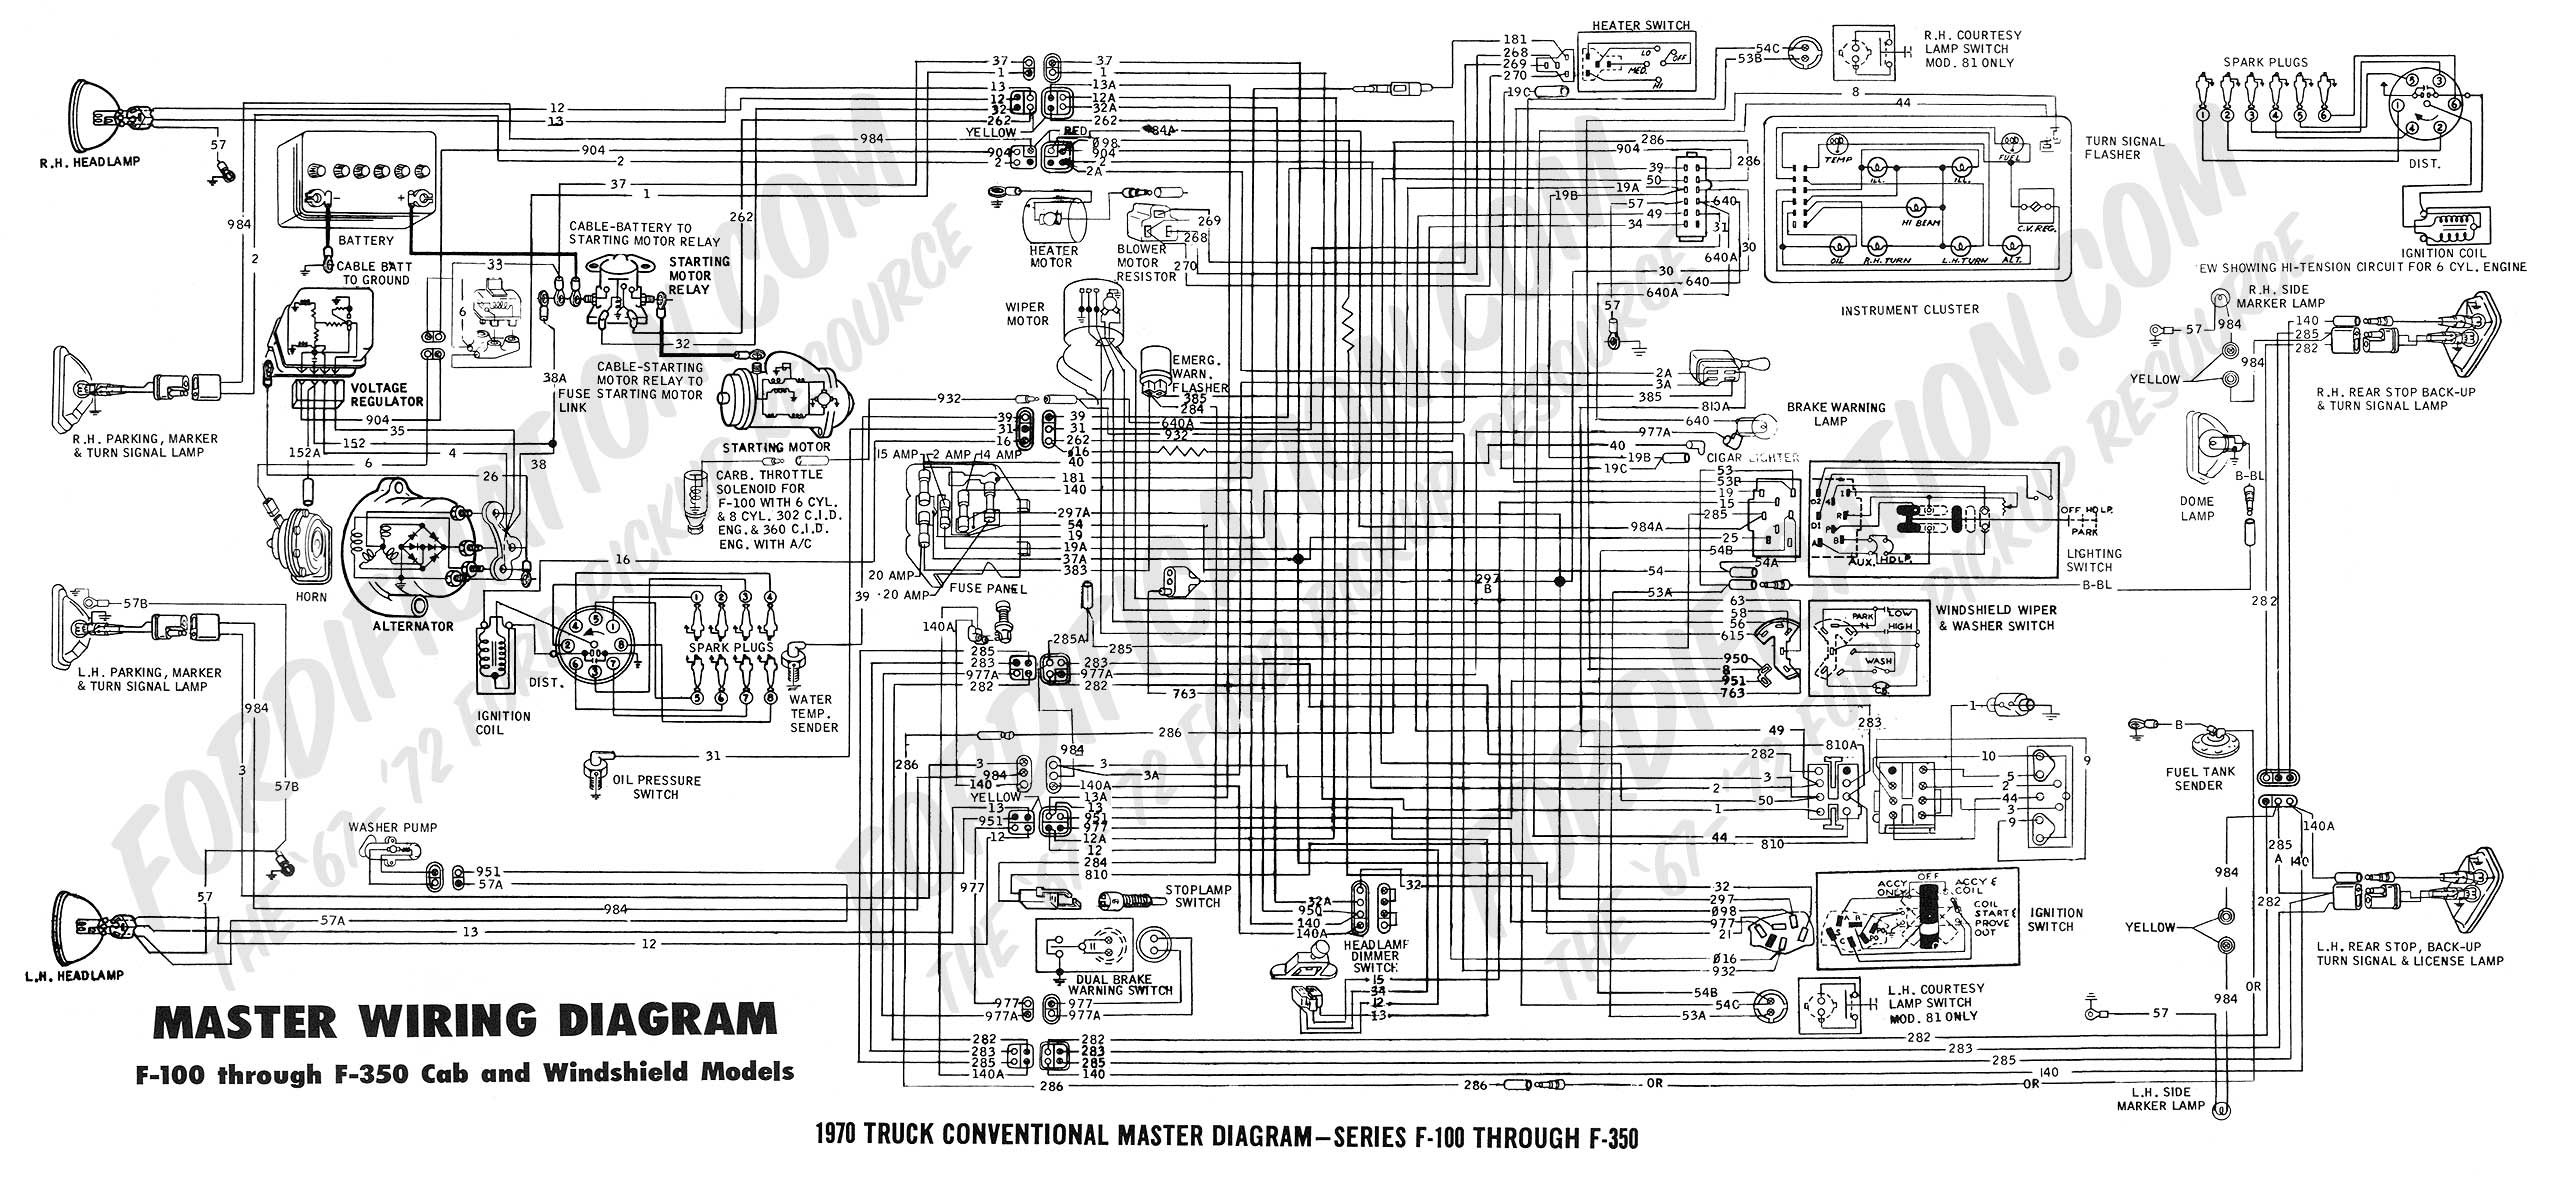 72 Ford Starter Wiring Diagram 1933 Chevrolet 1972 F250 Schema Online1972 Harness Experience Of